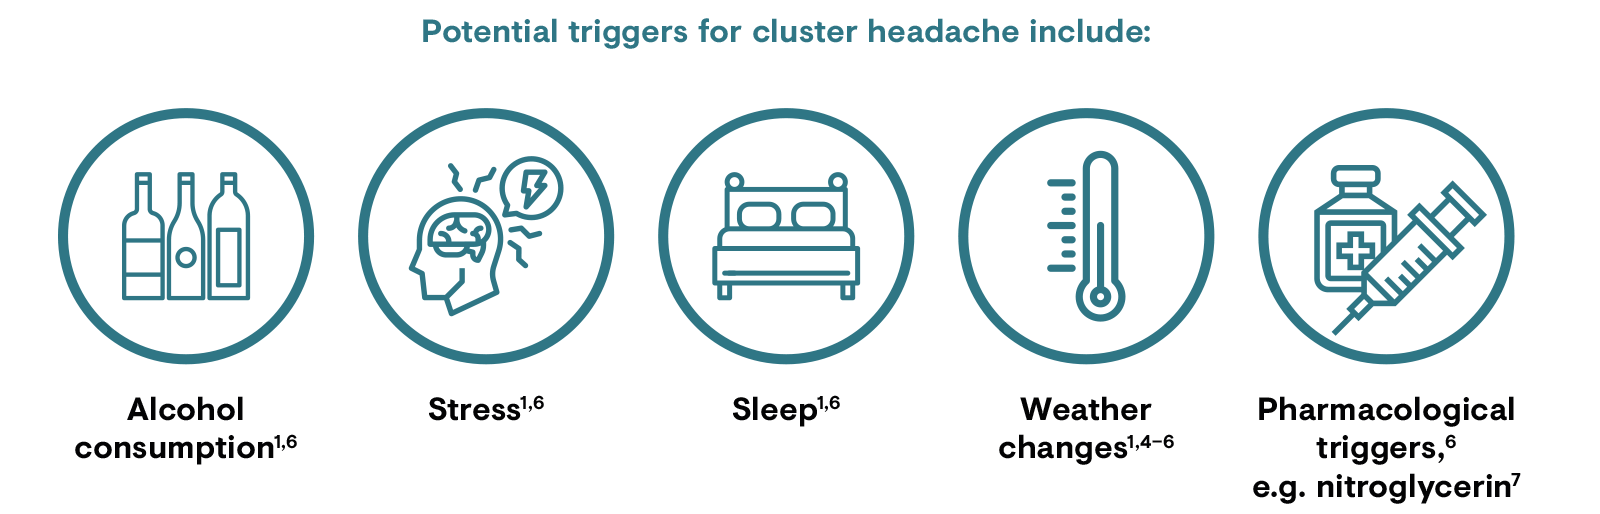 Potential triggers for cluster headache include alcohol, stress, sleep, weather changes and pharmacological triggers